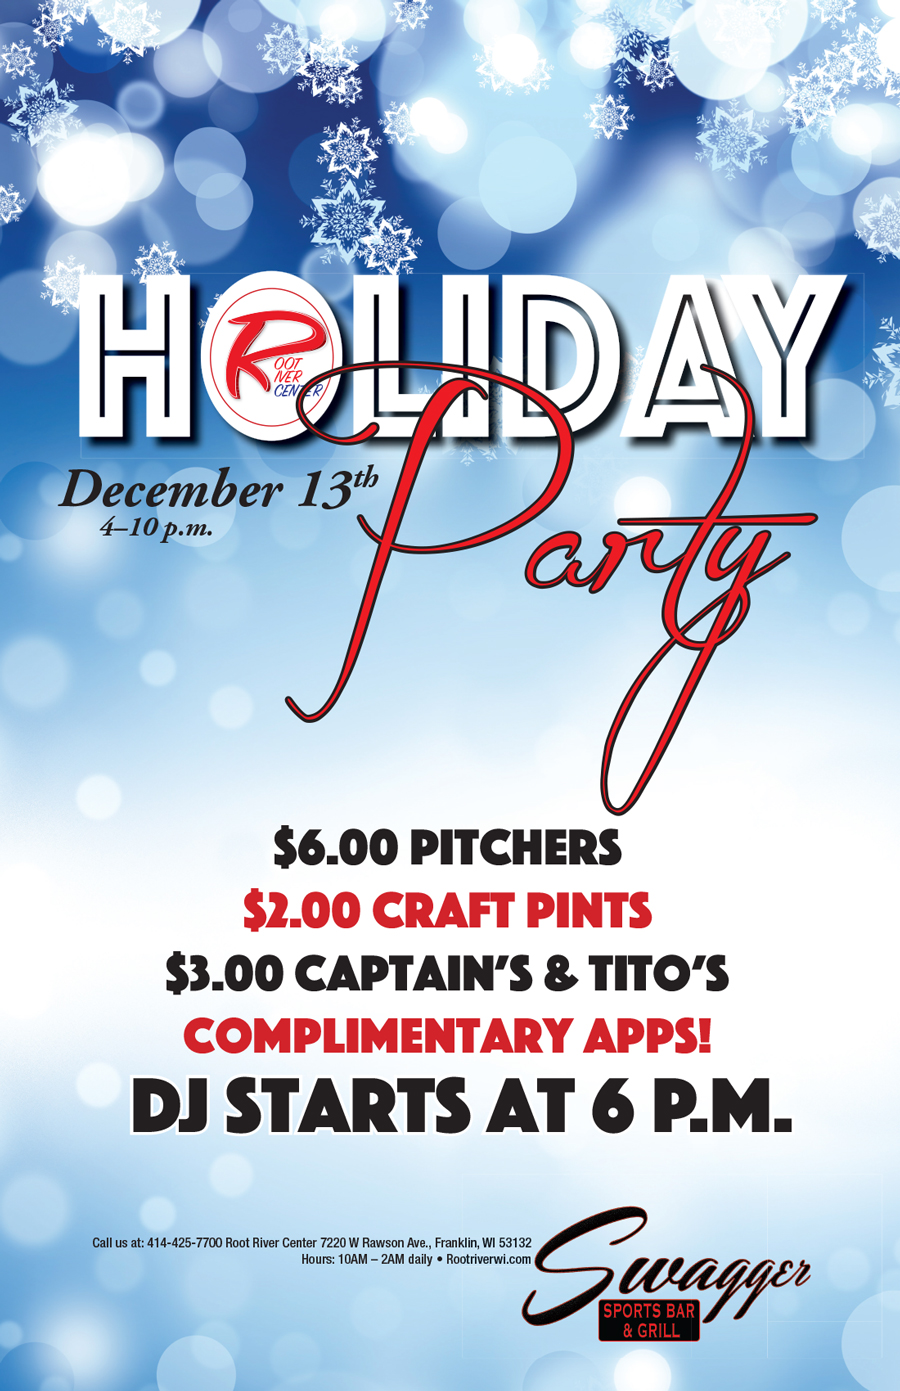 Holiday Party Dec 13th